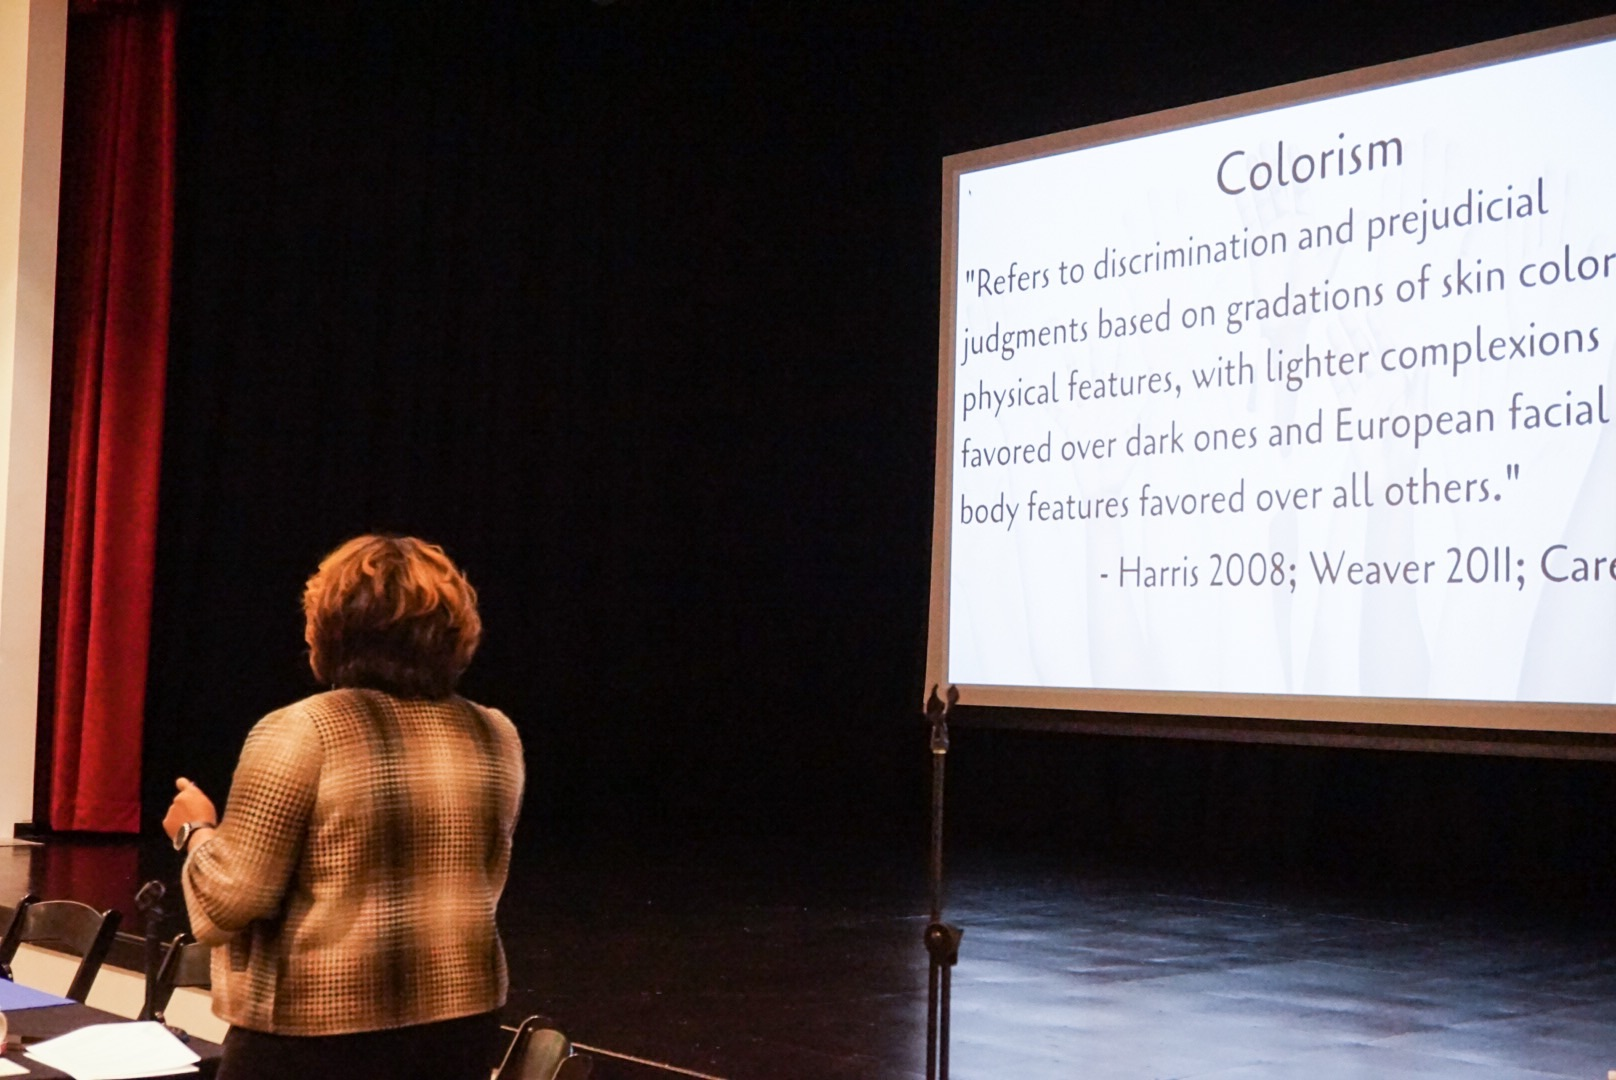 Colorism among the Black and Latinx communities is one of the topics that was discussed. Photo Courtesy of Carmen Febo San Miguel/Taller Puertorriqueño.